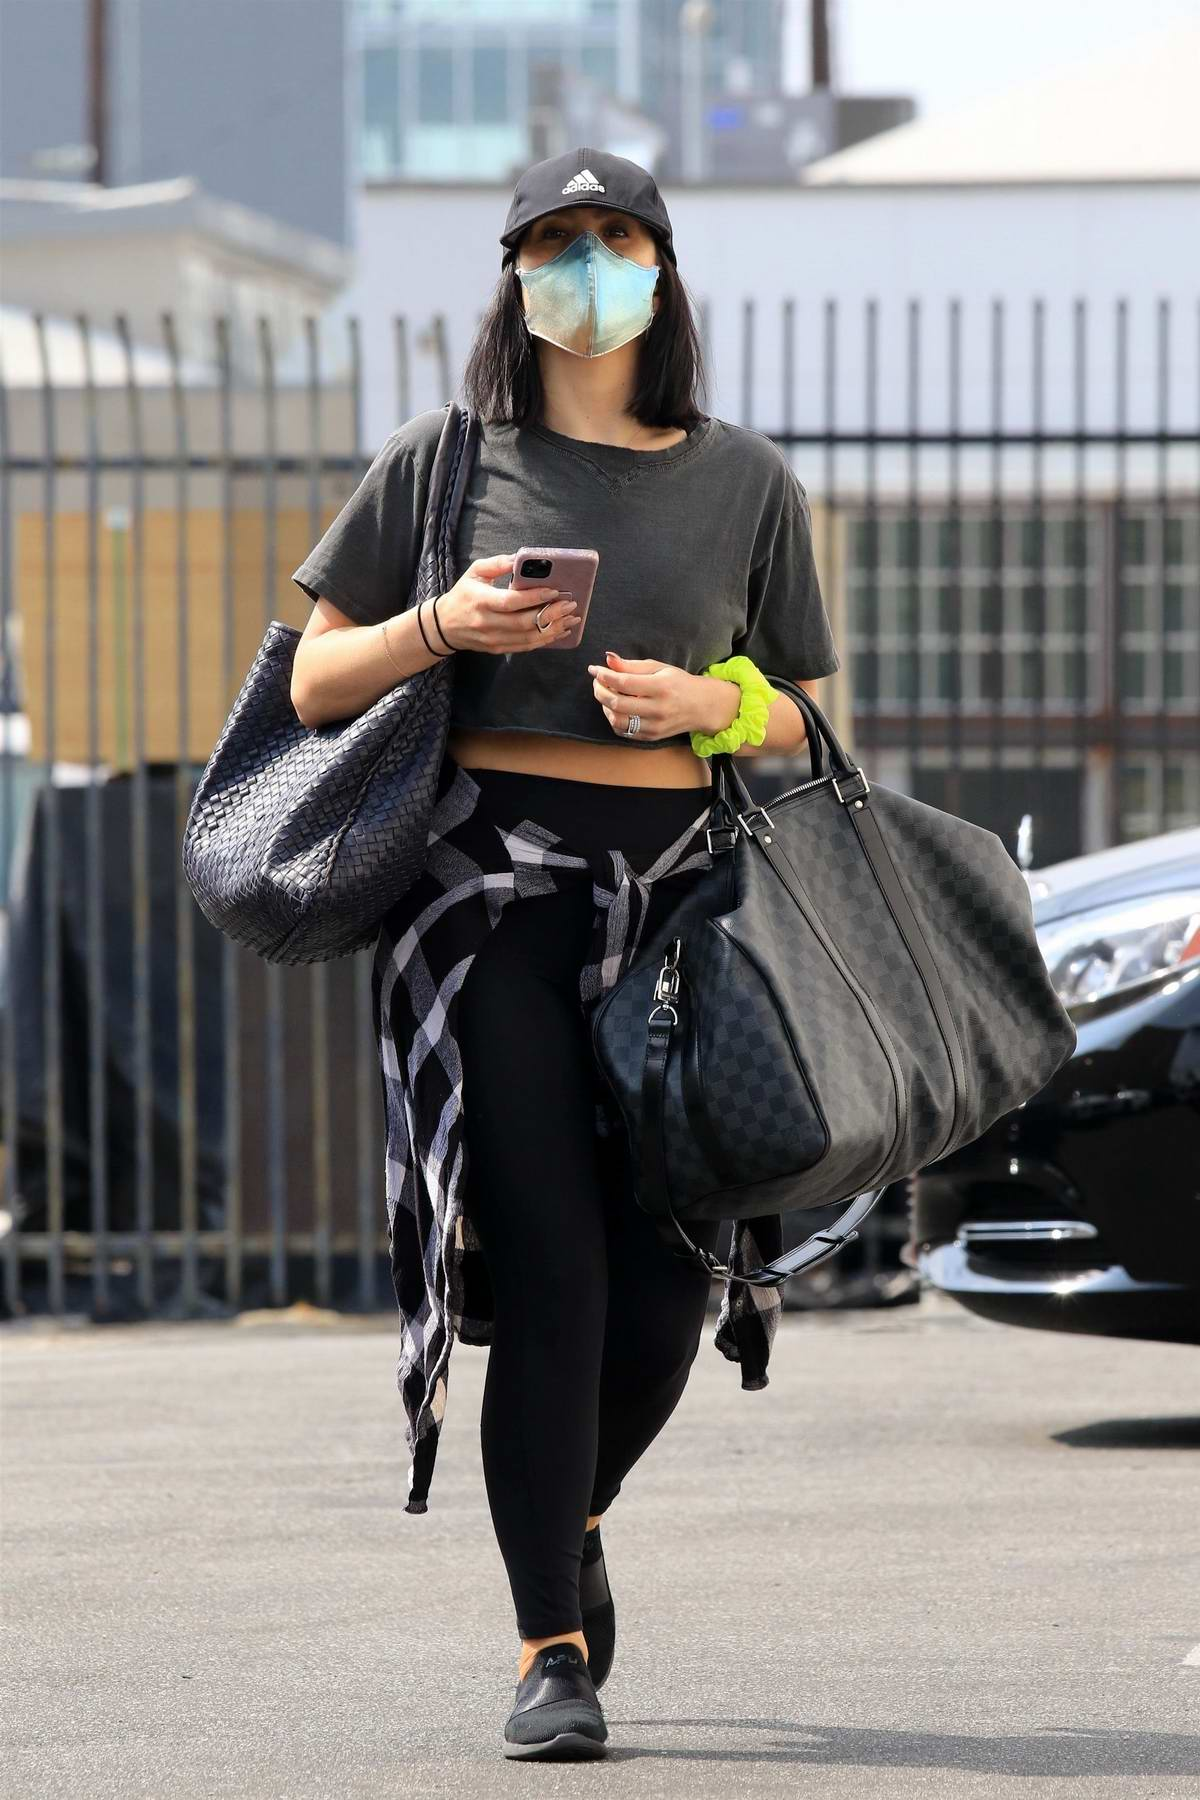 Cheryl Burke seen leaving after dance practice at DWTS studio in Los Angeles